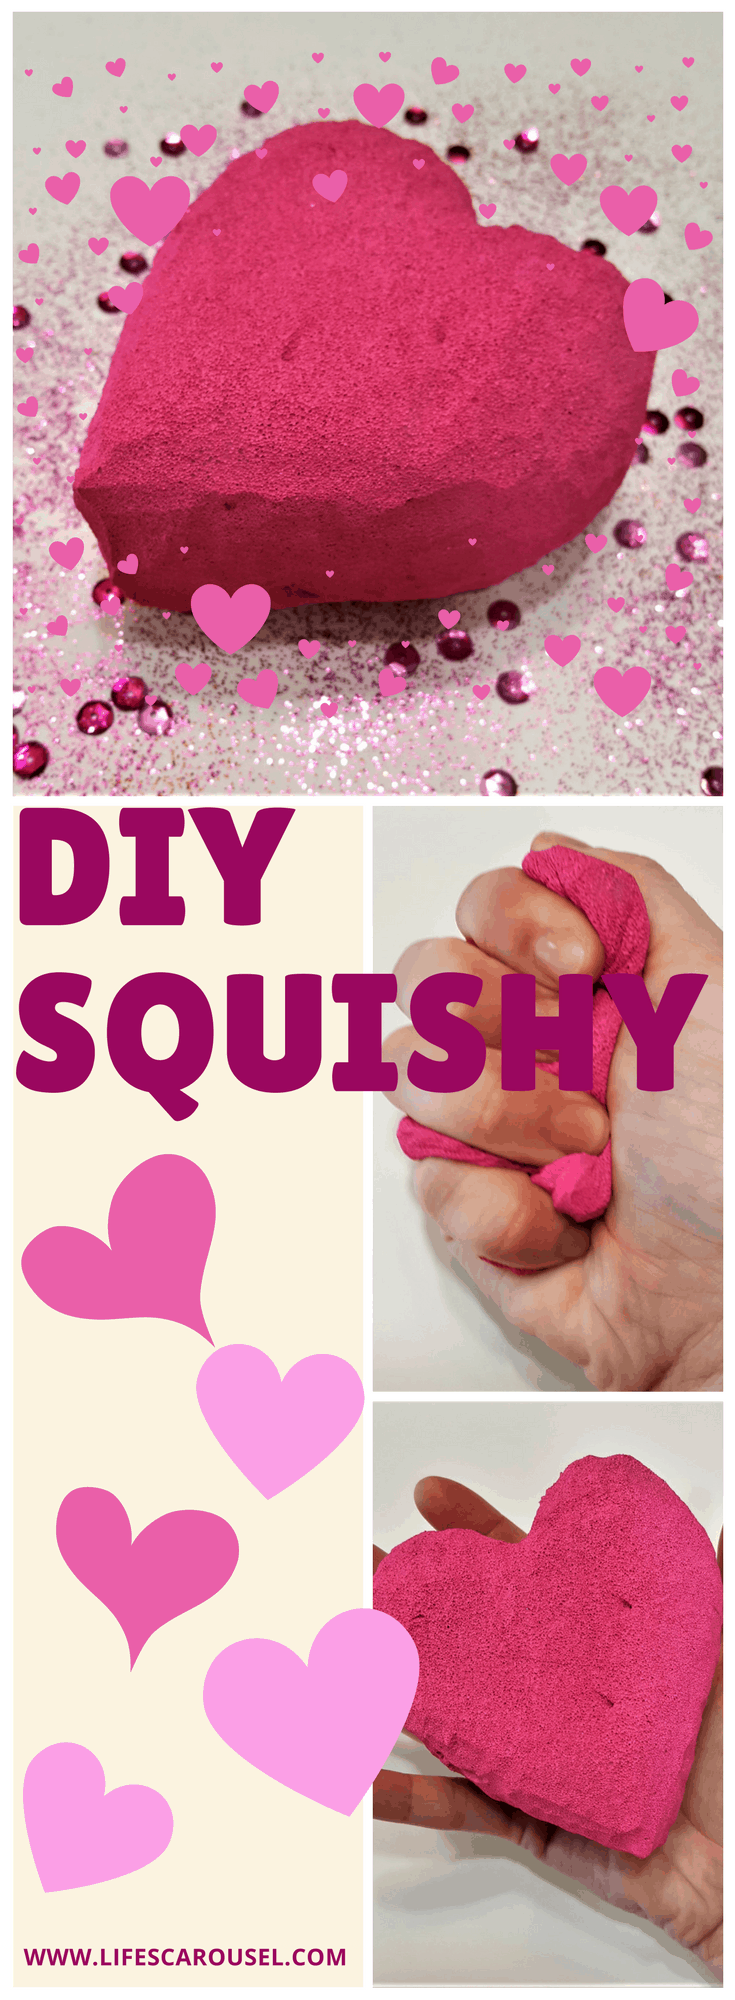 DIY Heart Squishie | How to make a squishy! Perfect for friend or classmate presents. Squishies are sooo popular right now - use these instruction for a homemade squishy.